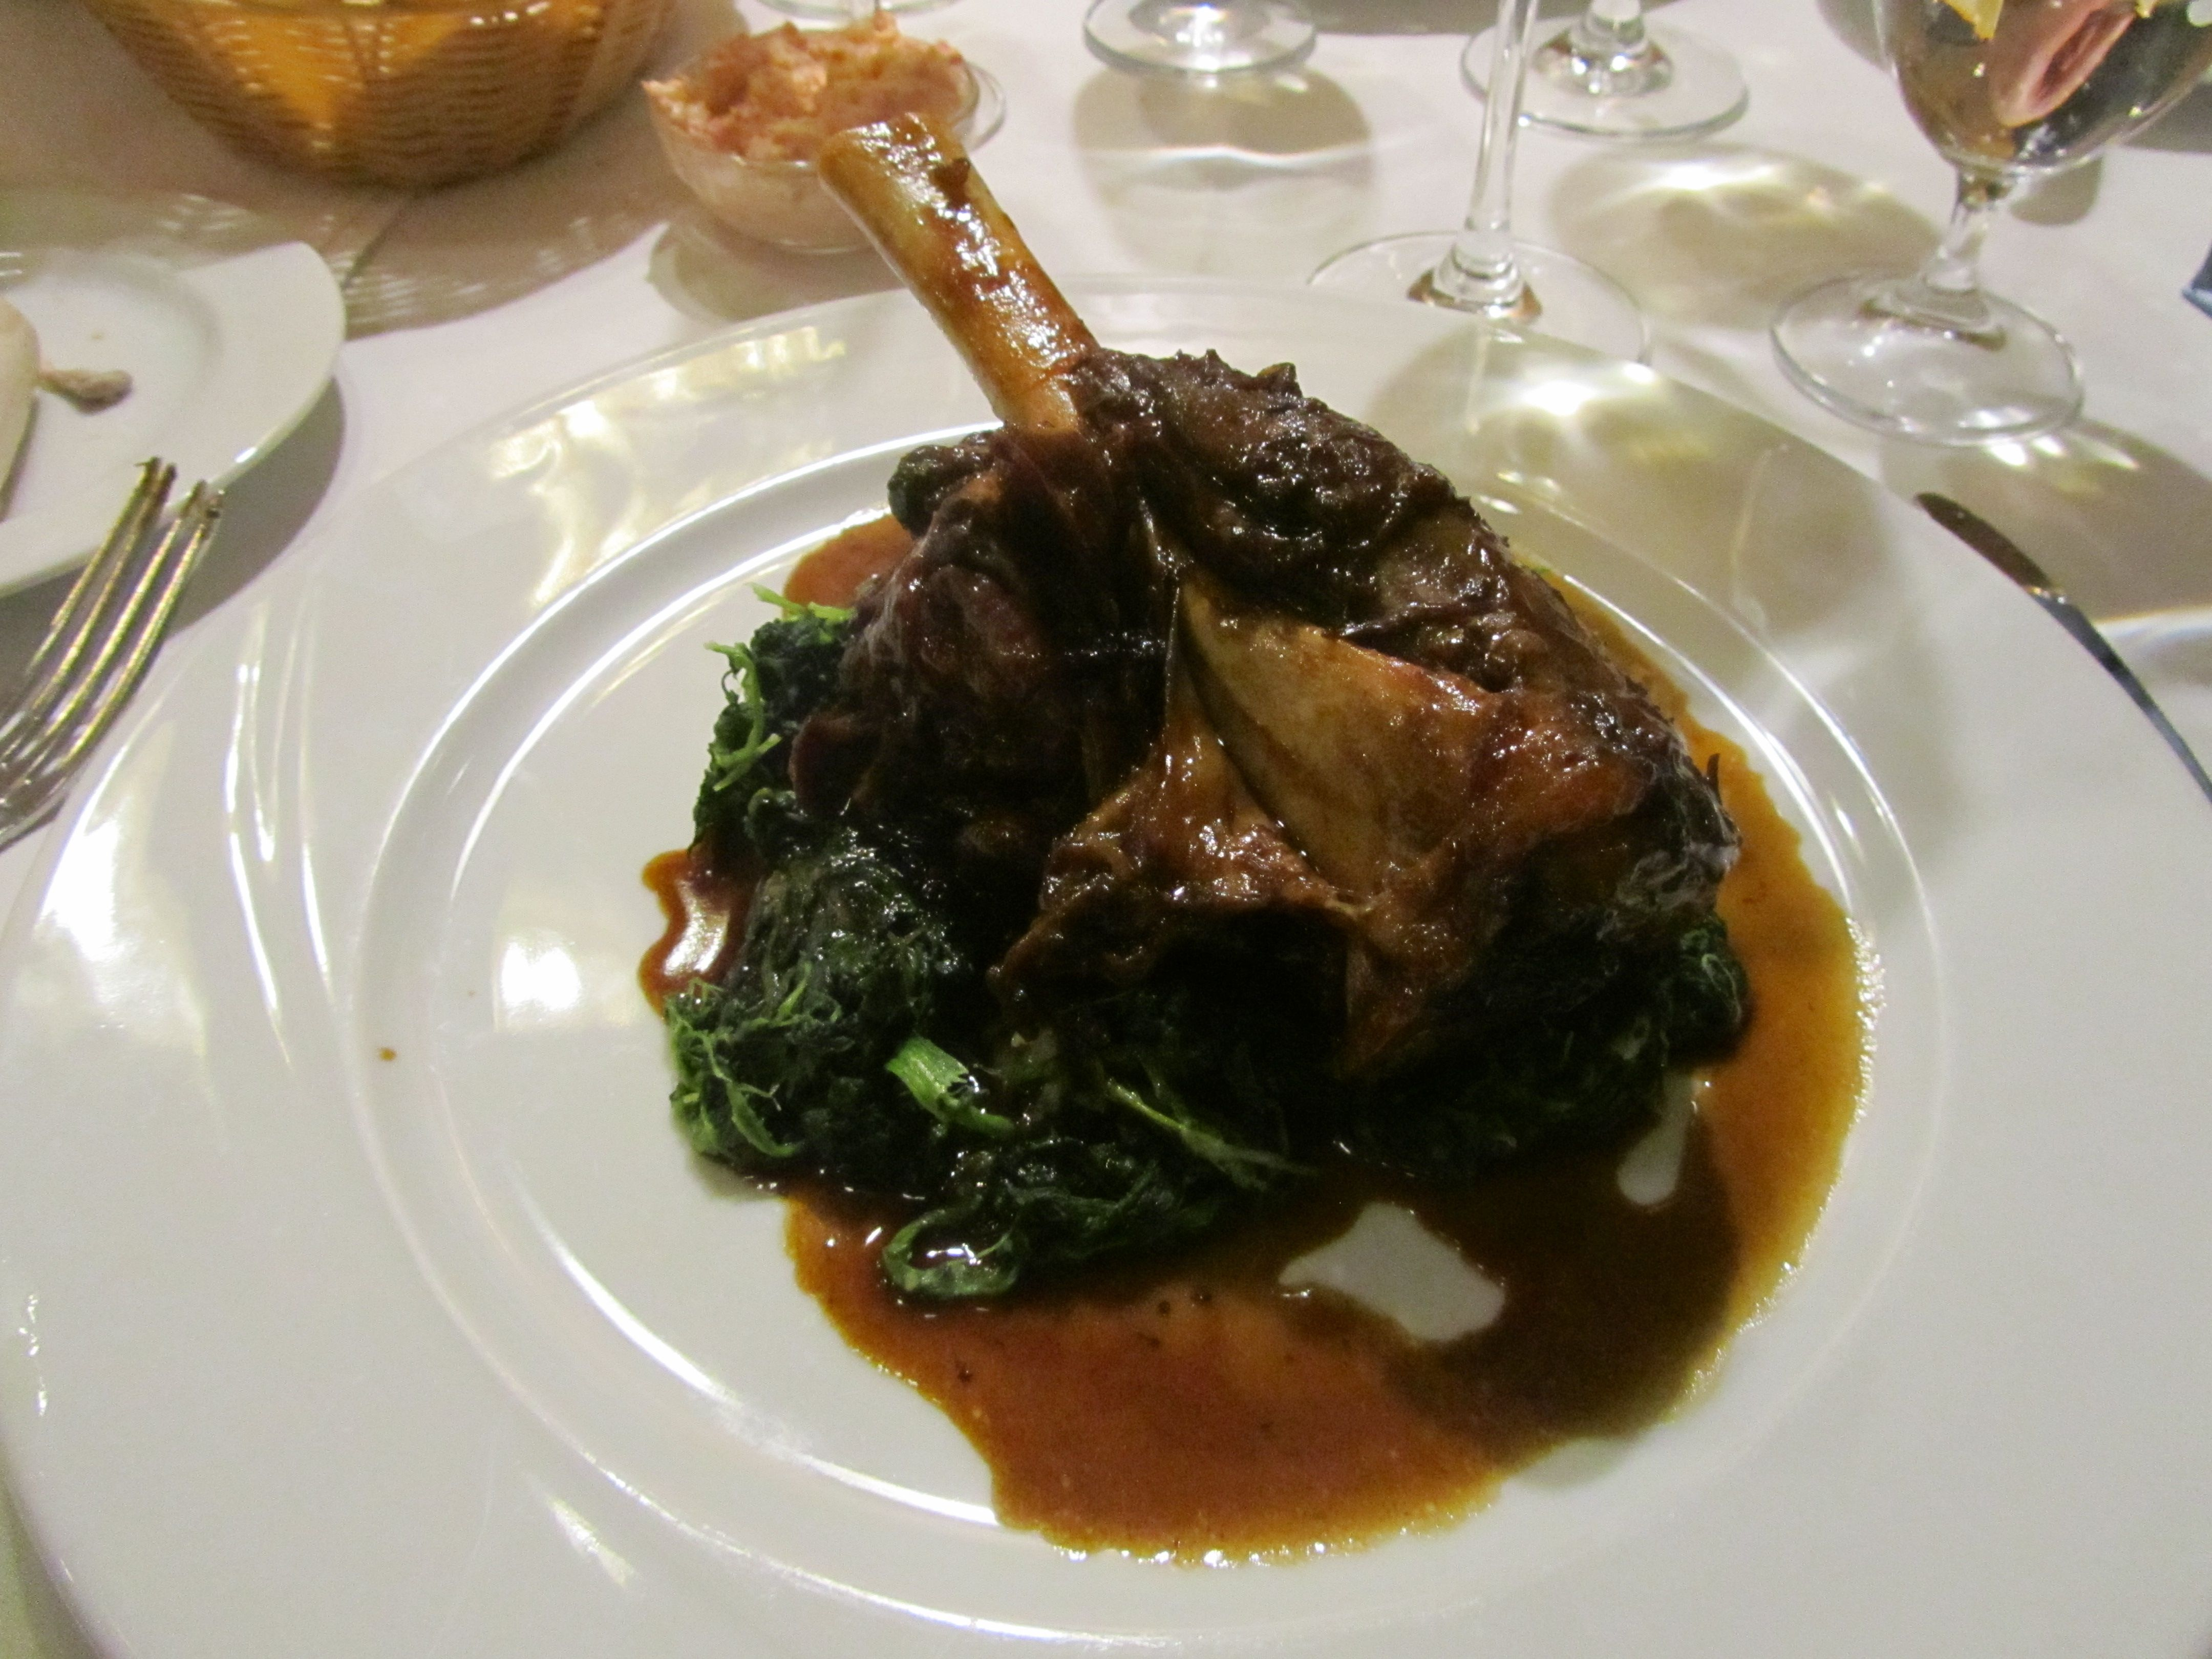 Braised shank of lamb with marjoran and creamed spinach. Cafe Imperial, Prague. http://www.cafeimperial.cz/en/